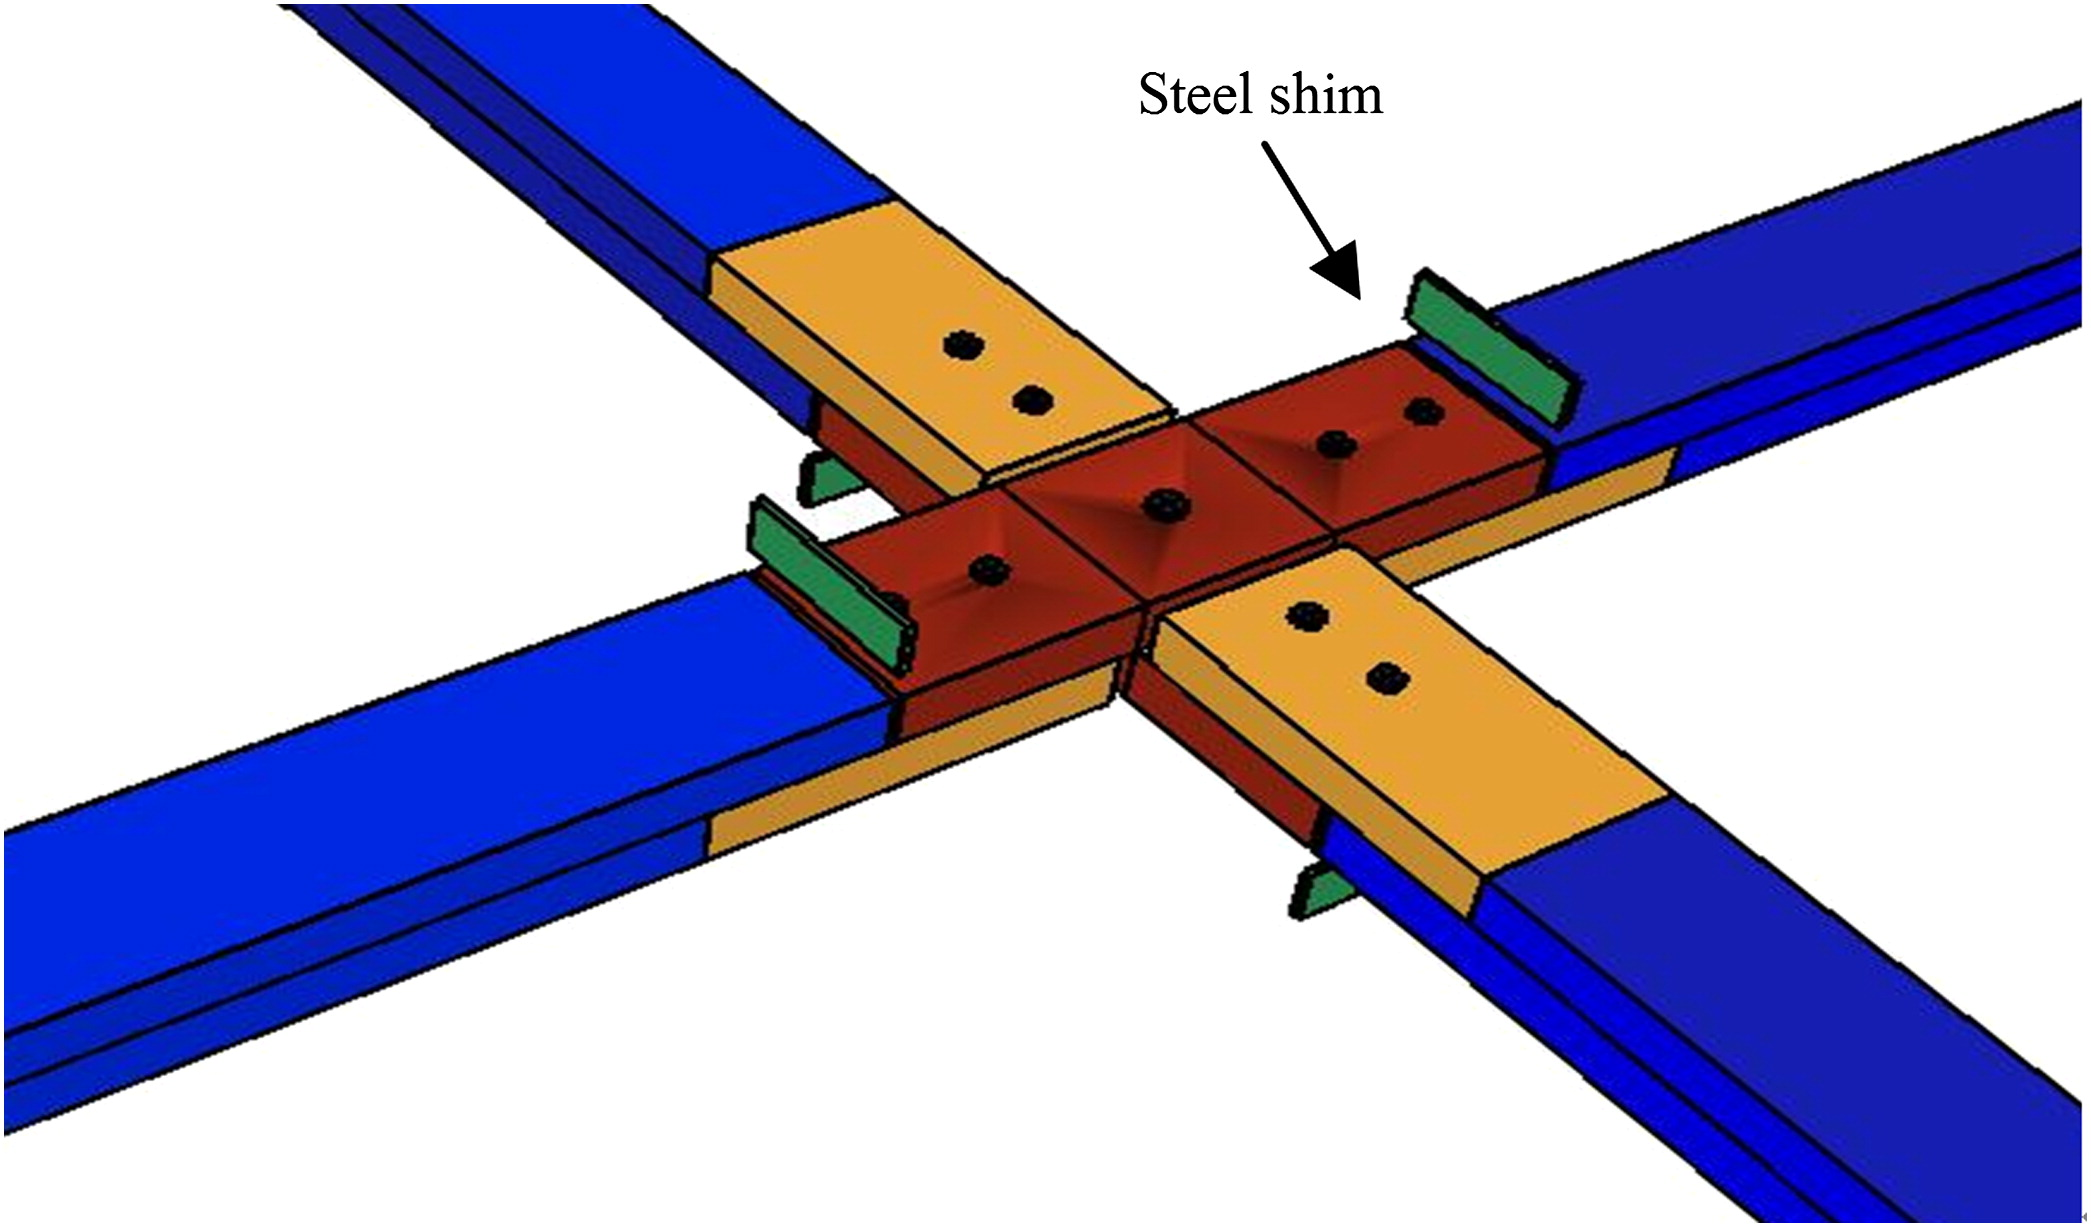 Behavior of Bolted Joints of Cable.